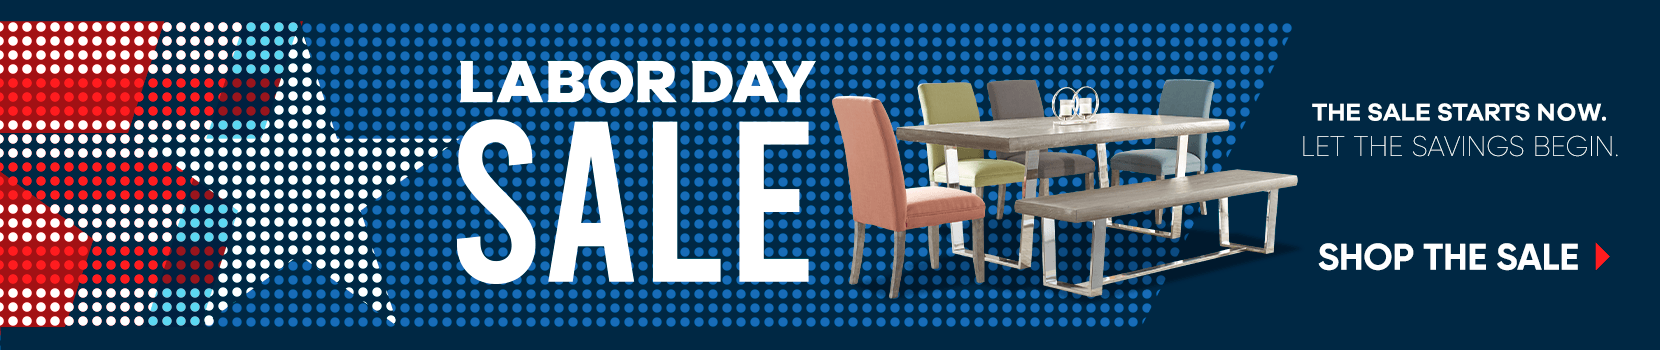 labor day sale. the sale starts now. let the savings begin. shop the sale